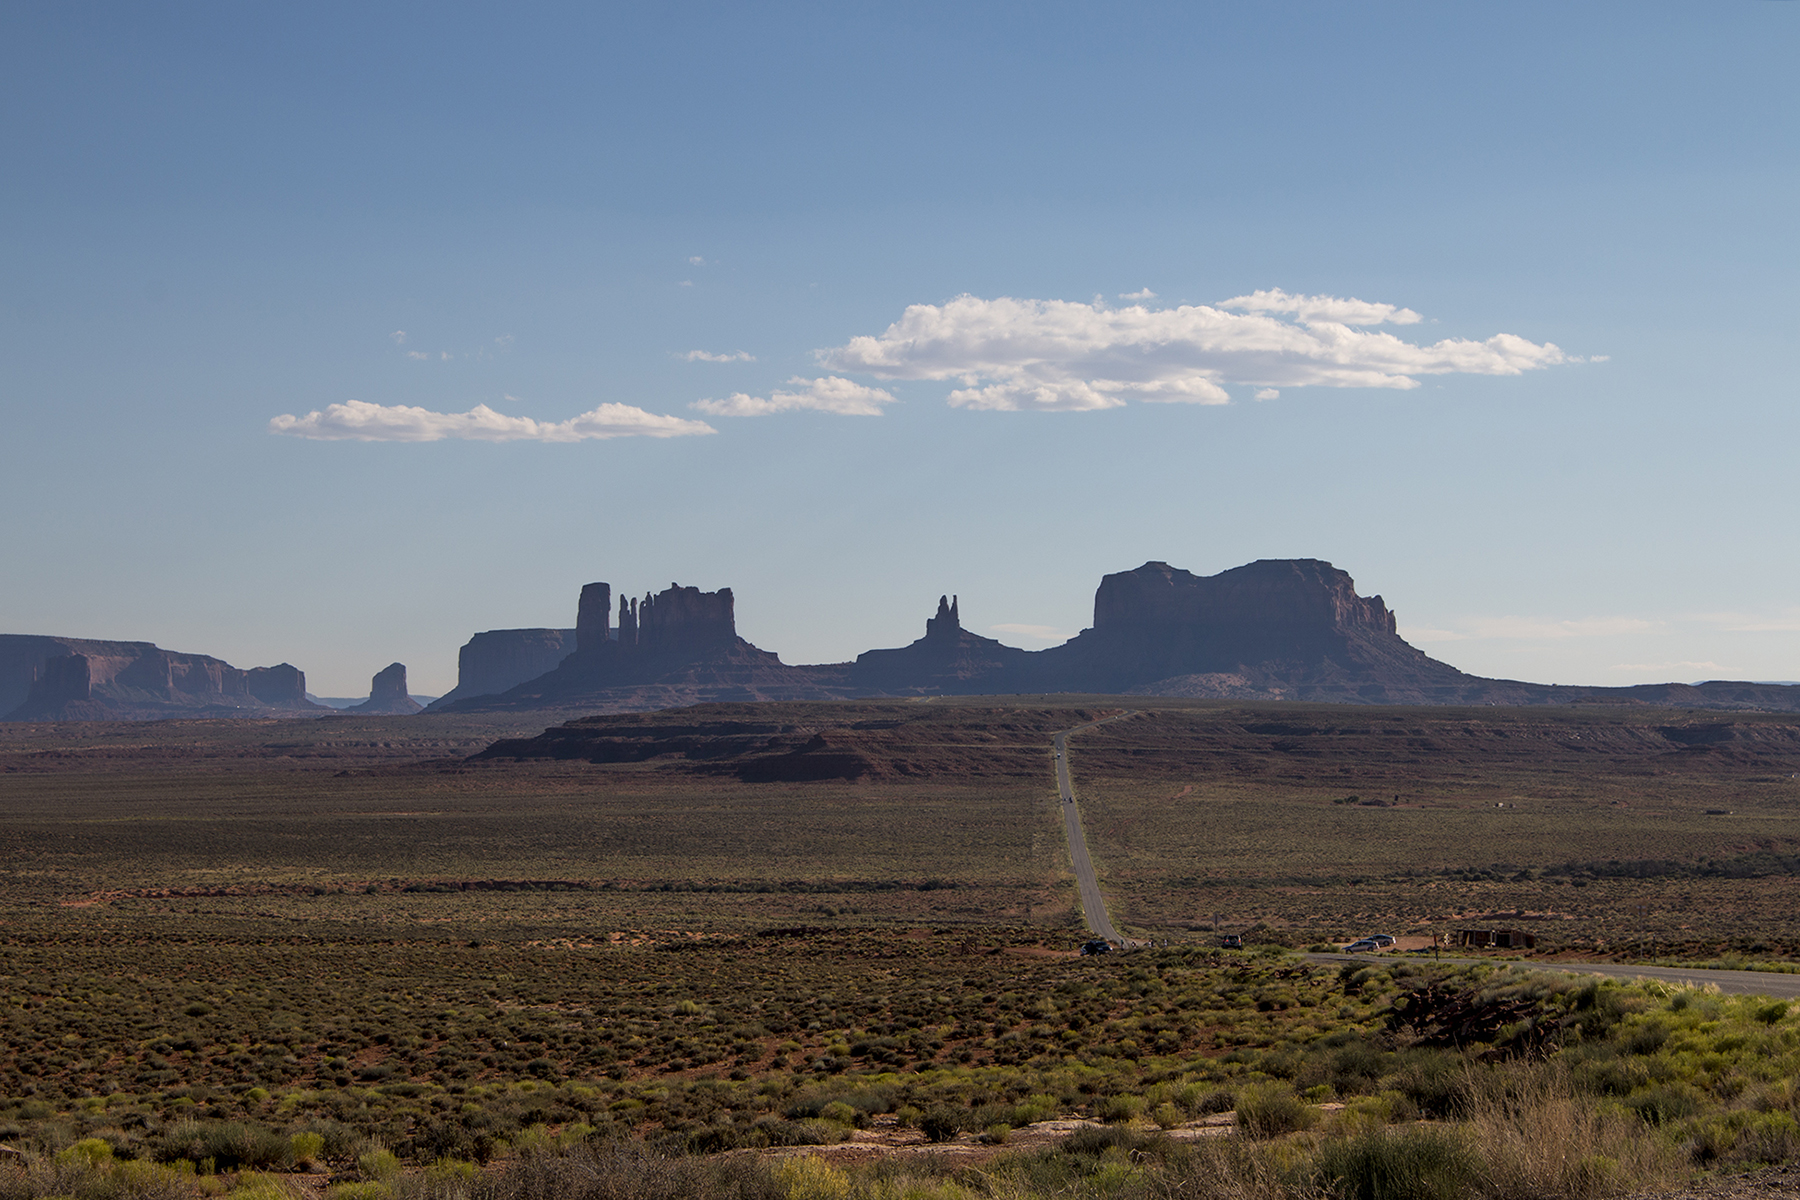 Nearly 200 miles separate Navajo Mountain from Monticello in San Juan County, Utah. The trip requires drivers to first travel south into Arizona before traveling north to the county seat. In between the two destinations rests Monument Valley Navajo Tribal Park. (Erin Vogel-Fox/News21)